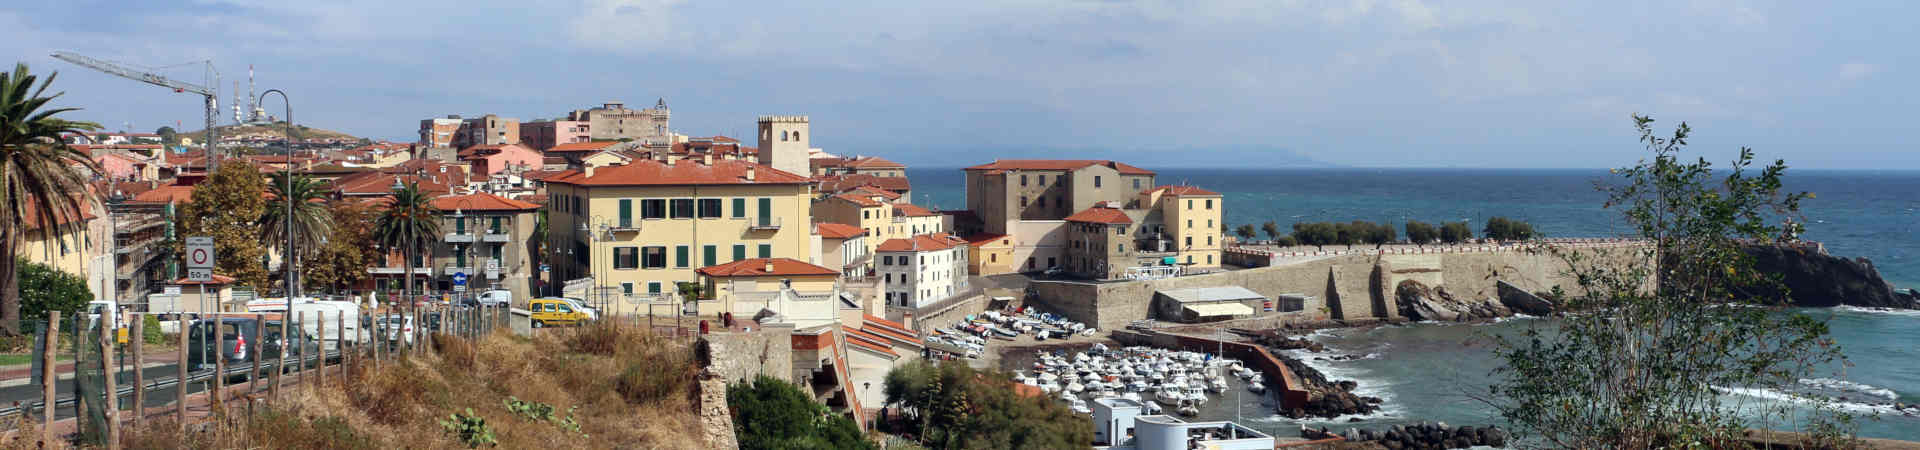 Resource image of the destination port Piombino for the ferry route Olbia - Piombino